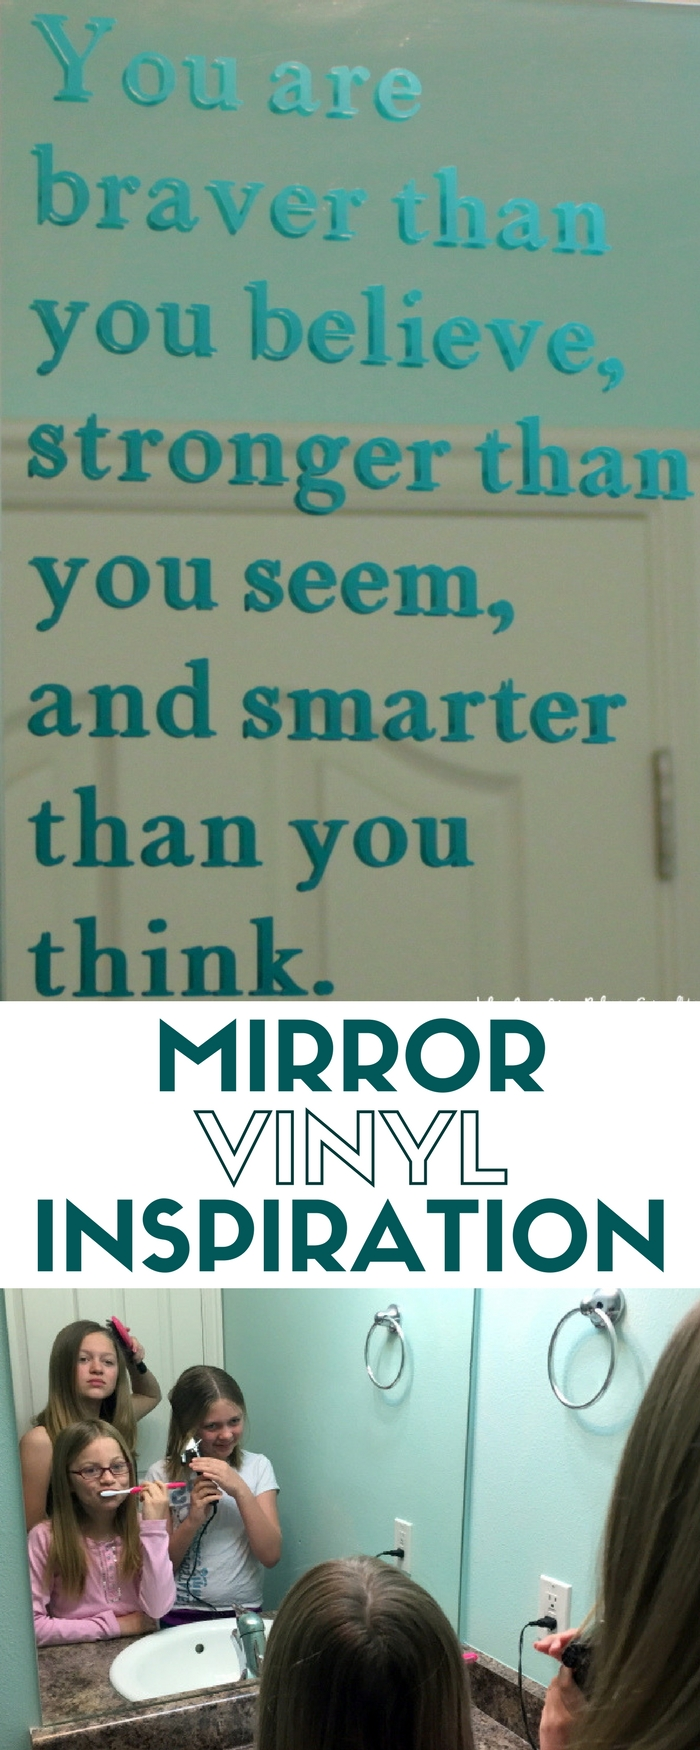 Inspirational Quote | Morning Routine | Cricut Explore | Vinyl | Bathroom Mirror